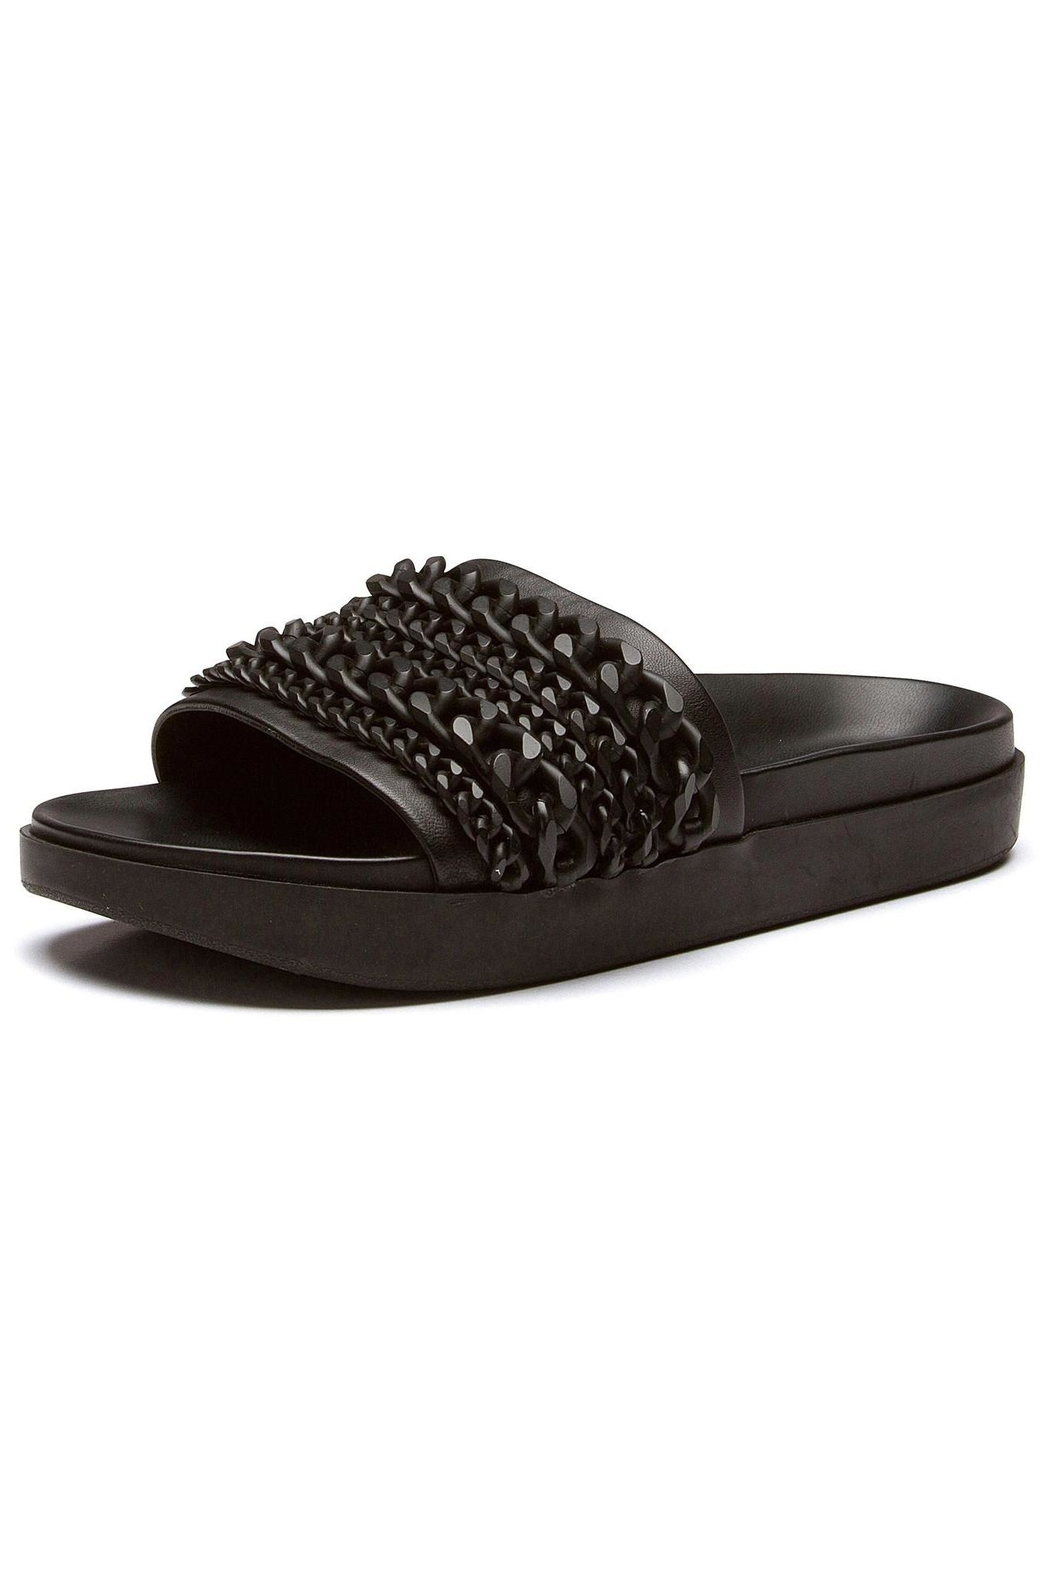 Kendall + Kylie Black Shiloh Sandal - Front Cropped Image